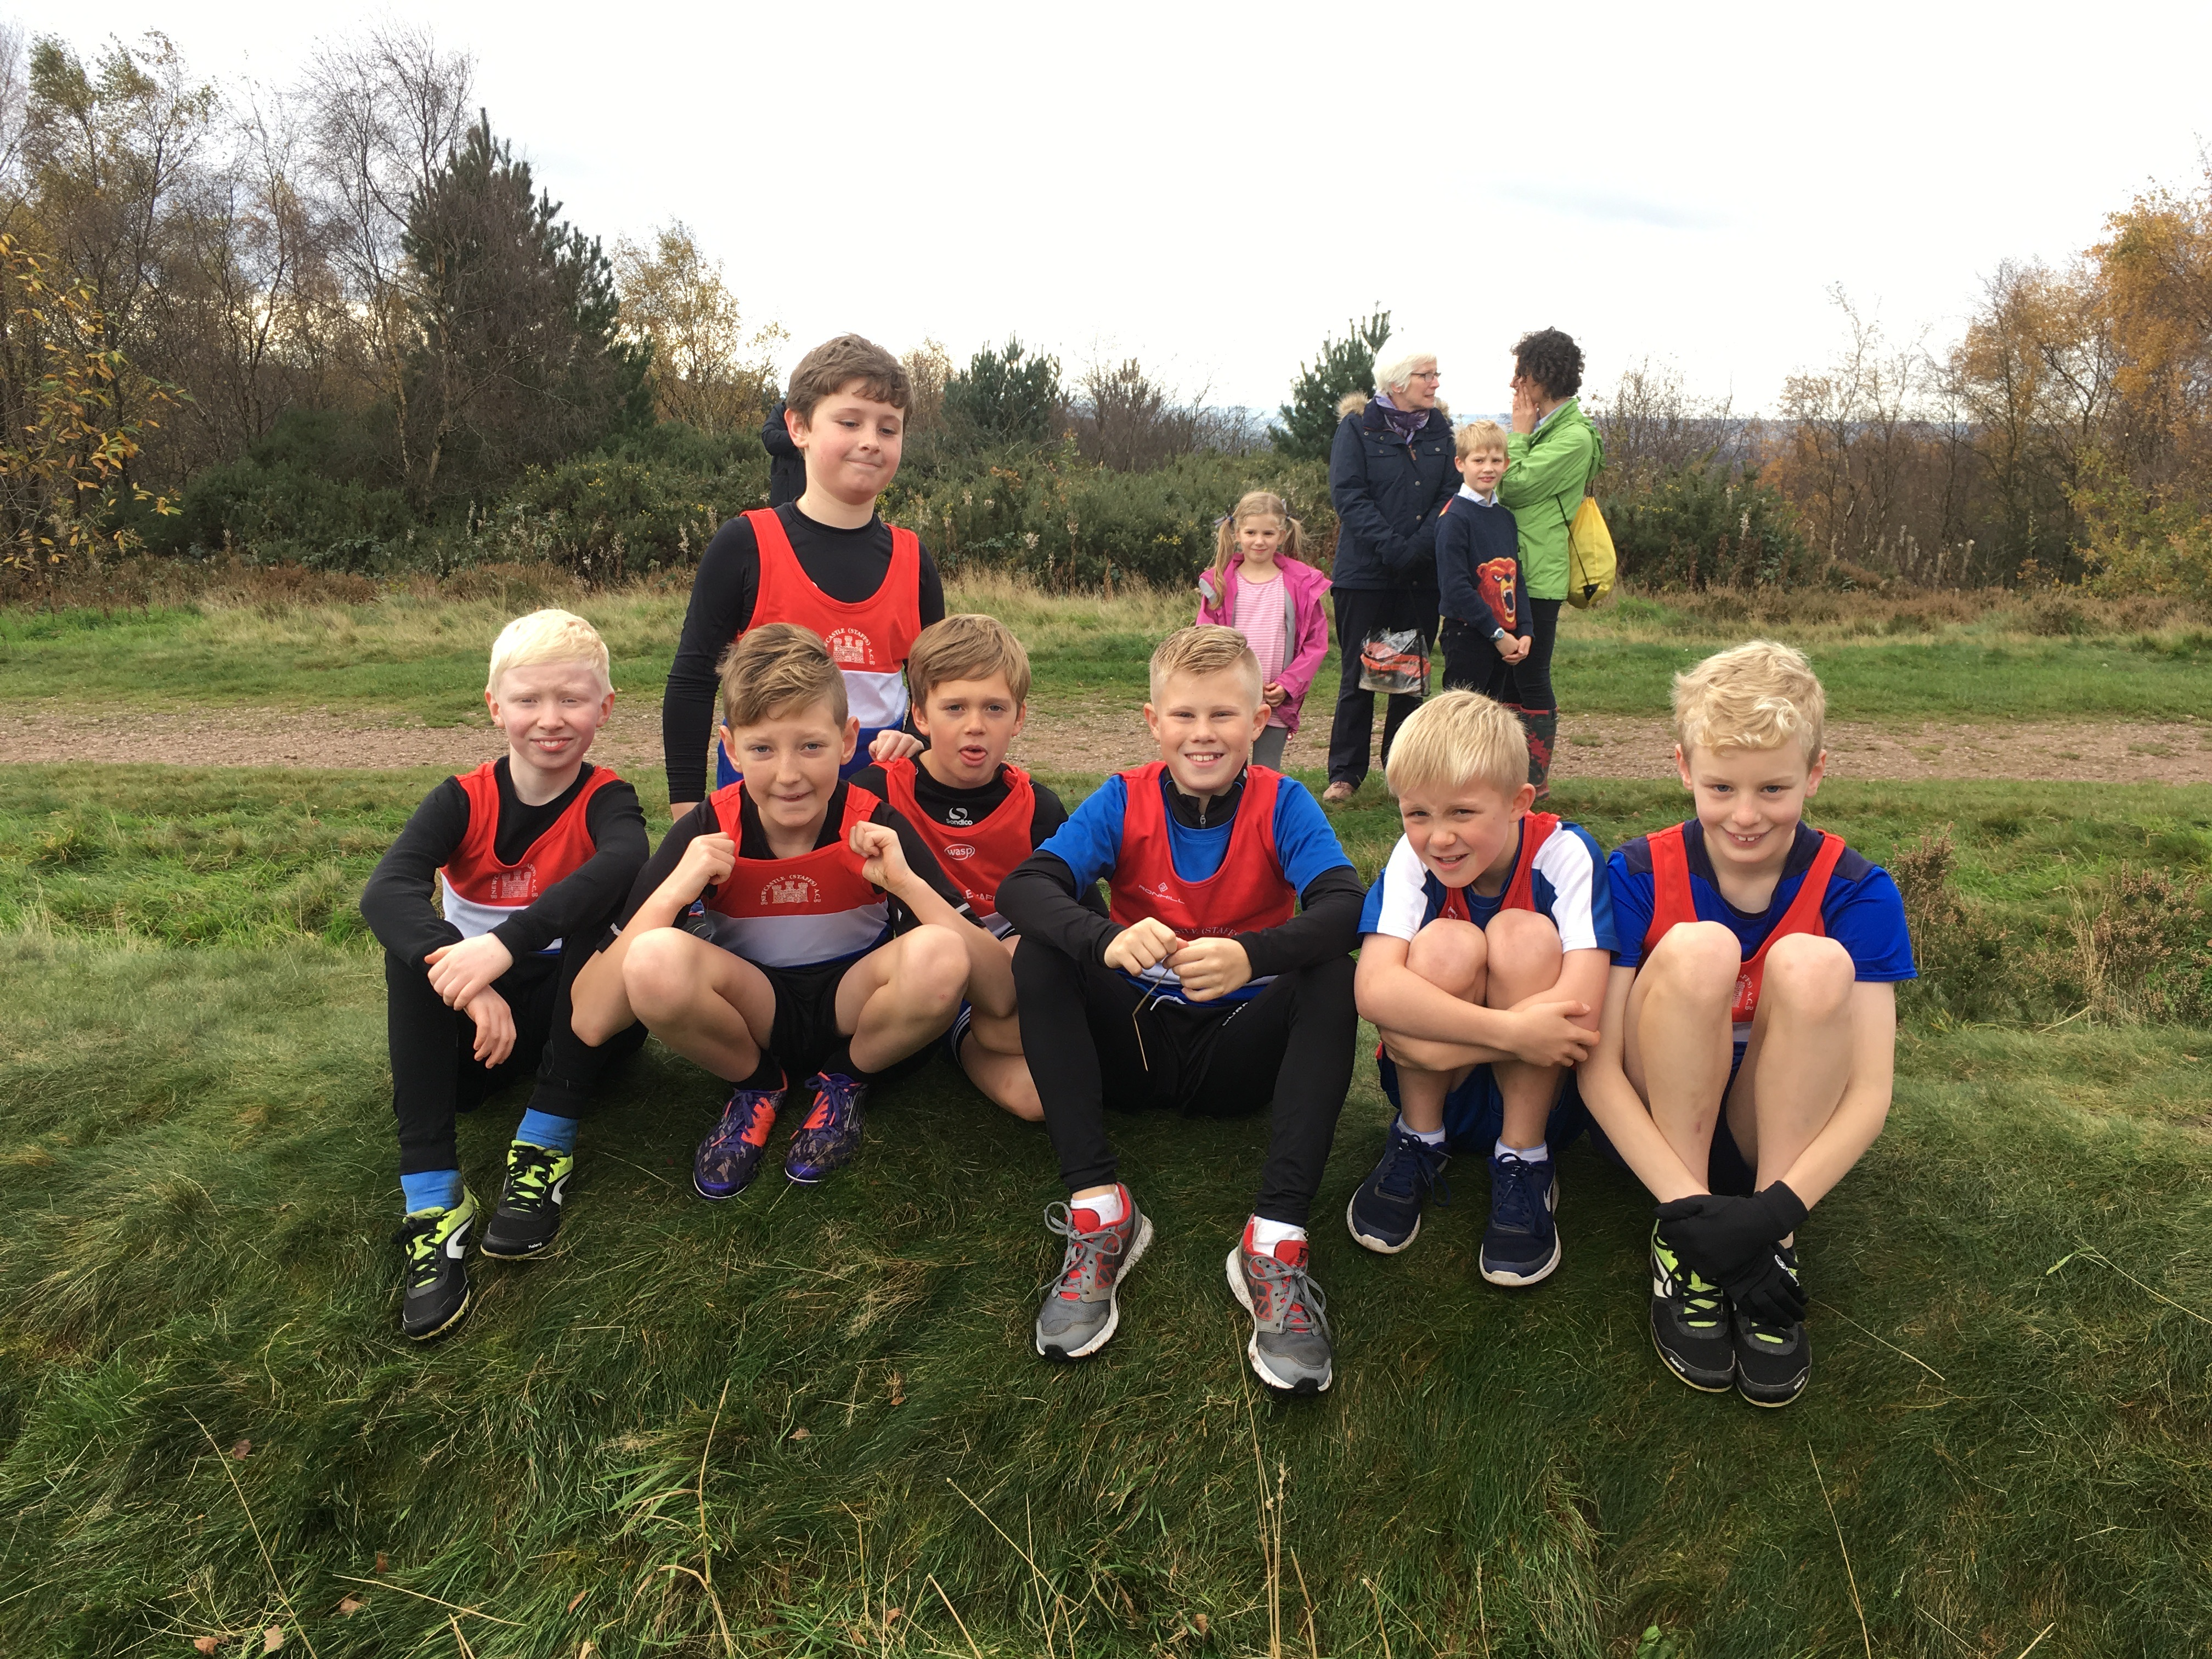 North Staffs Cross Country League – Fixture 2 @ Parkhall – 28/10/17